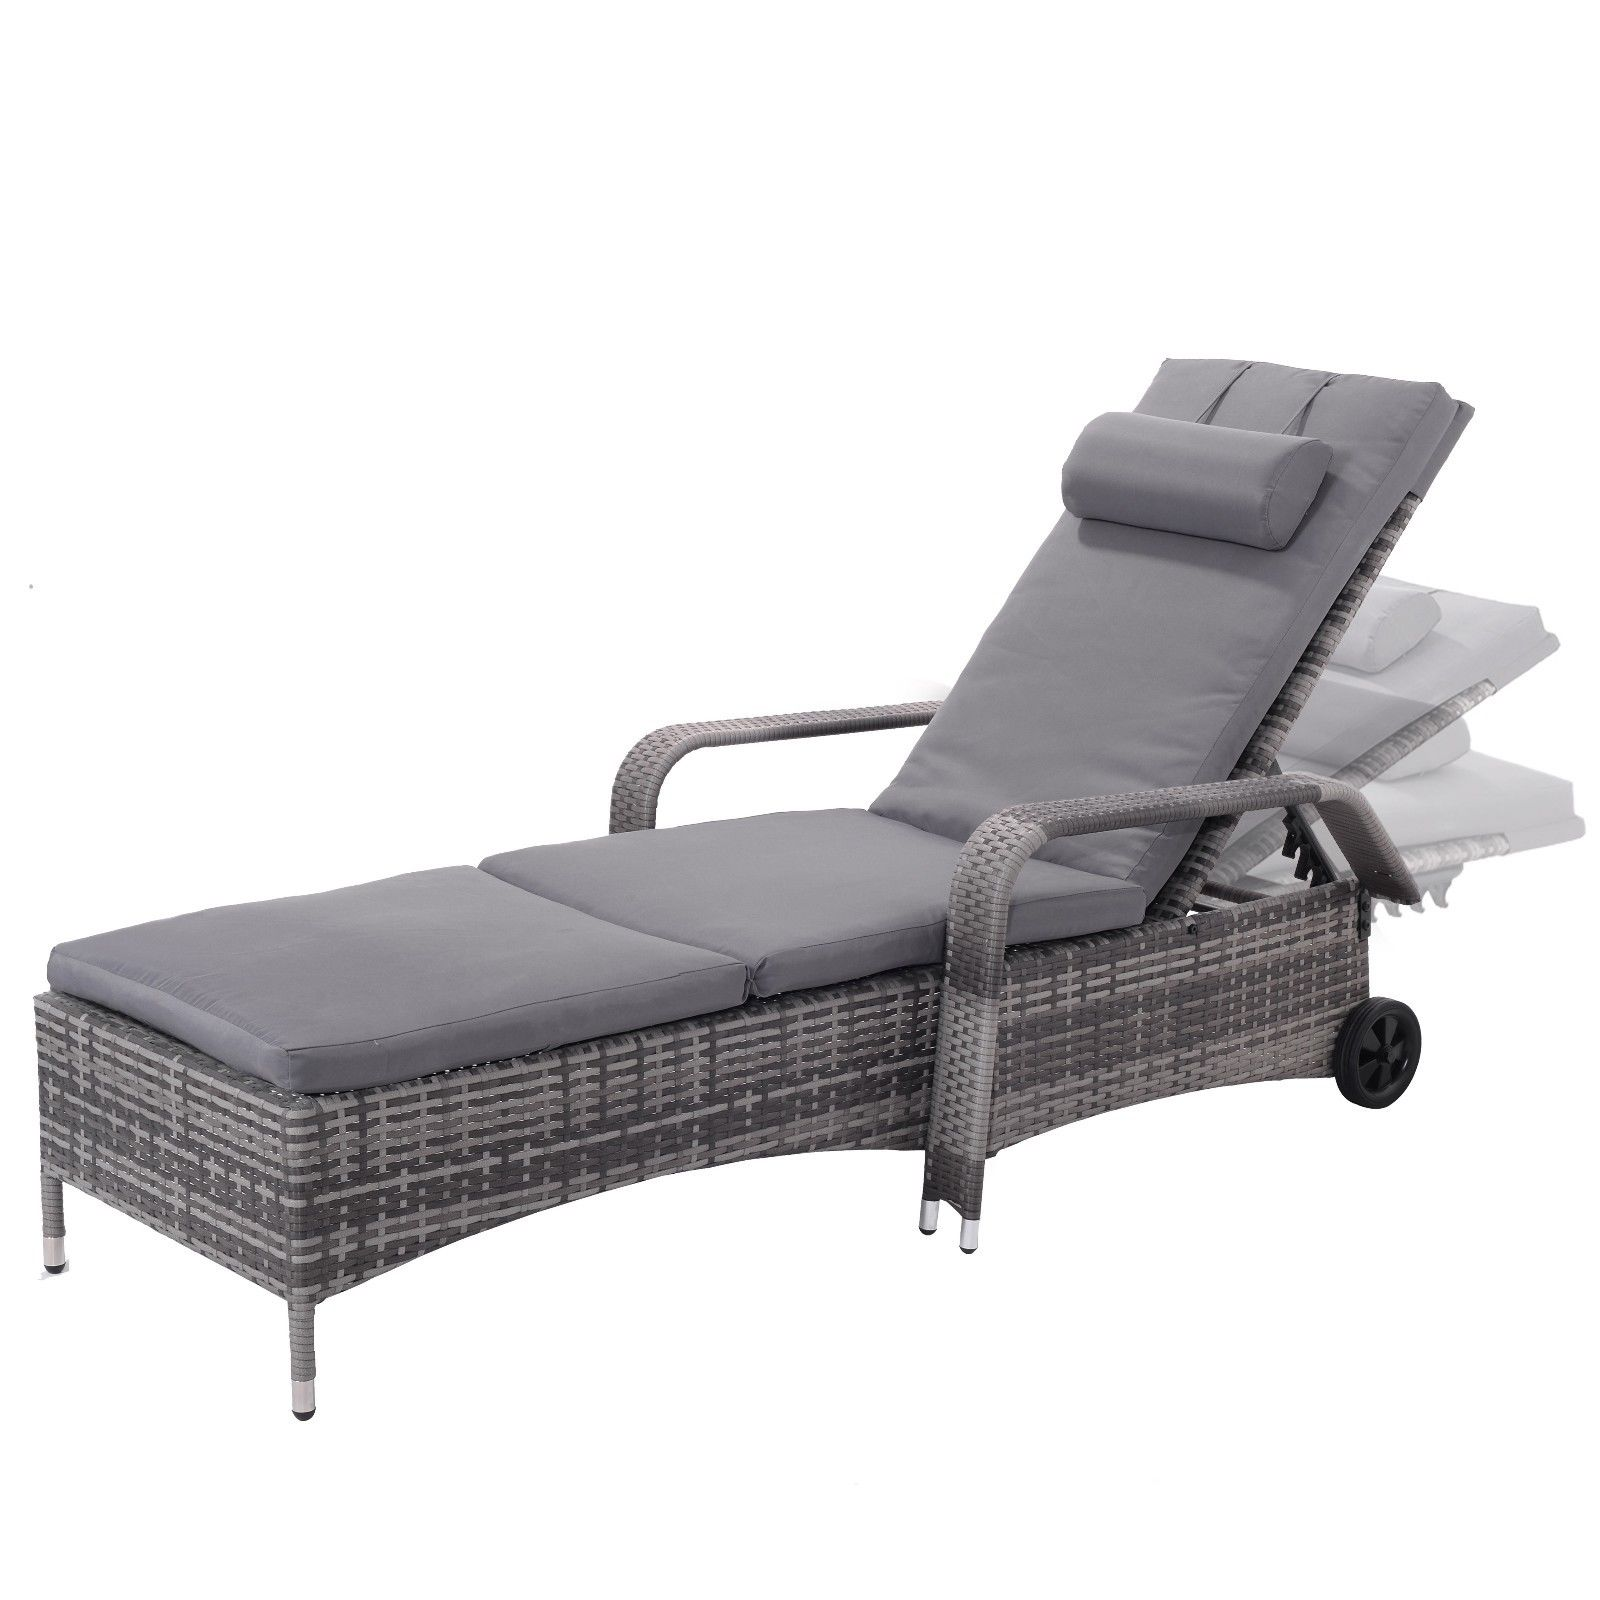 Giantex Outdoor Chaise Lounge Chair Recliner Cushioned Patio Garden Furniture Adjustable Lounge Chairs with Wheels HW53958 ...